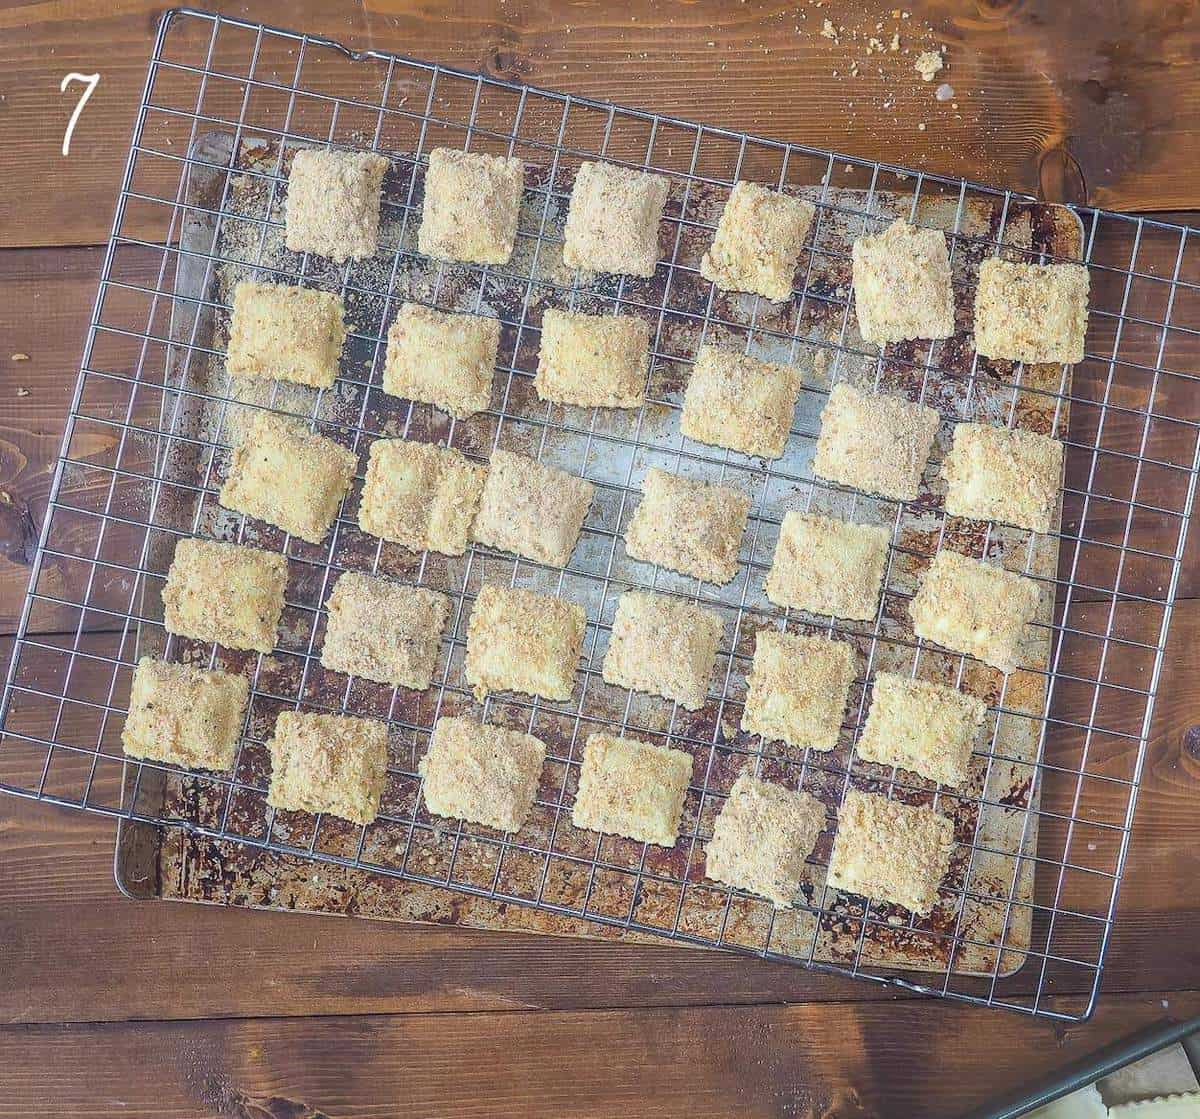 Breaded but uncooked ravioli on a cookie rack.